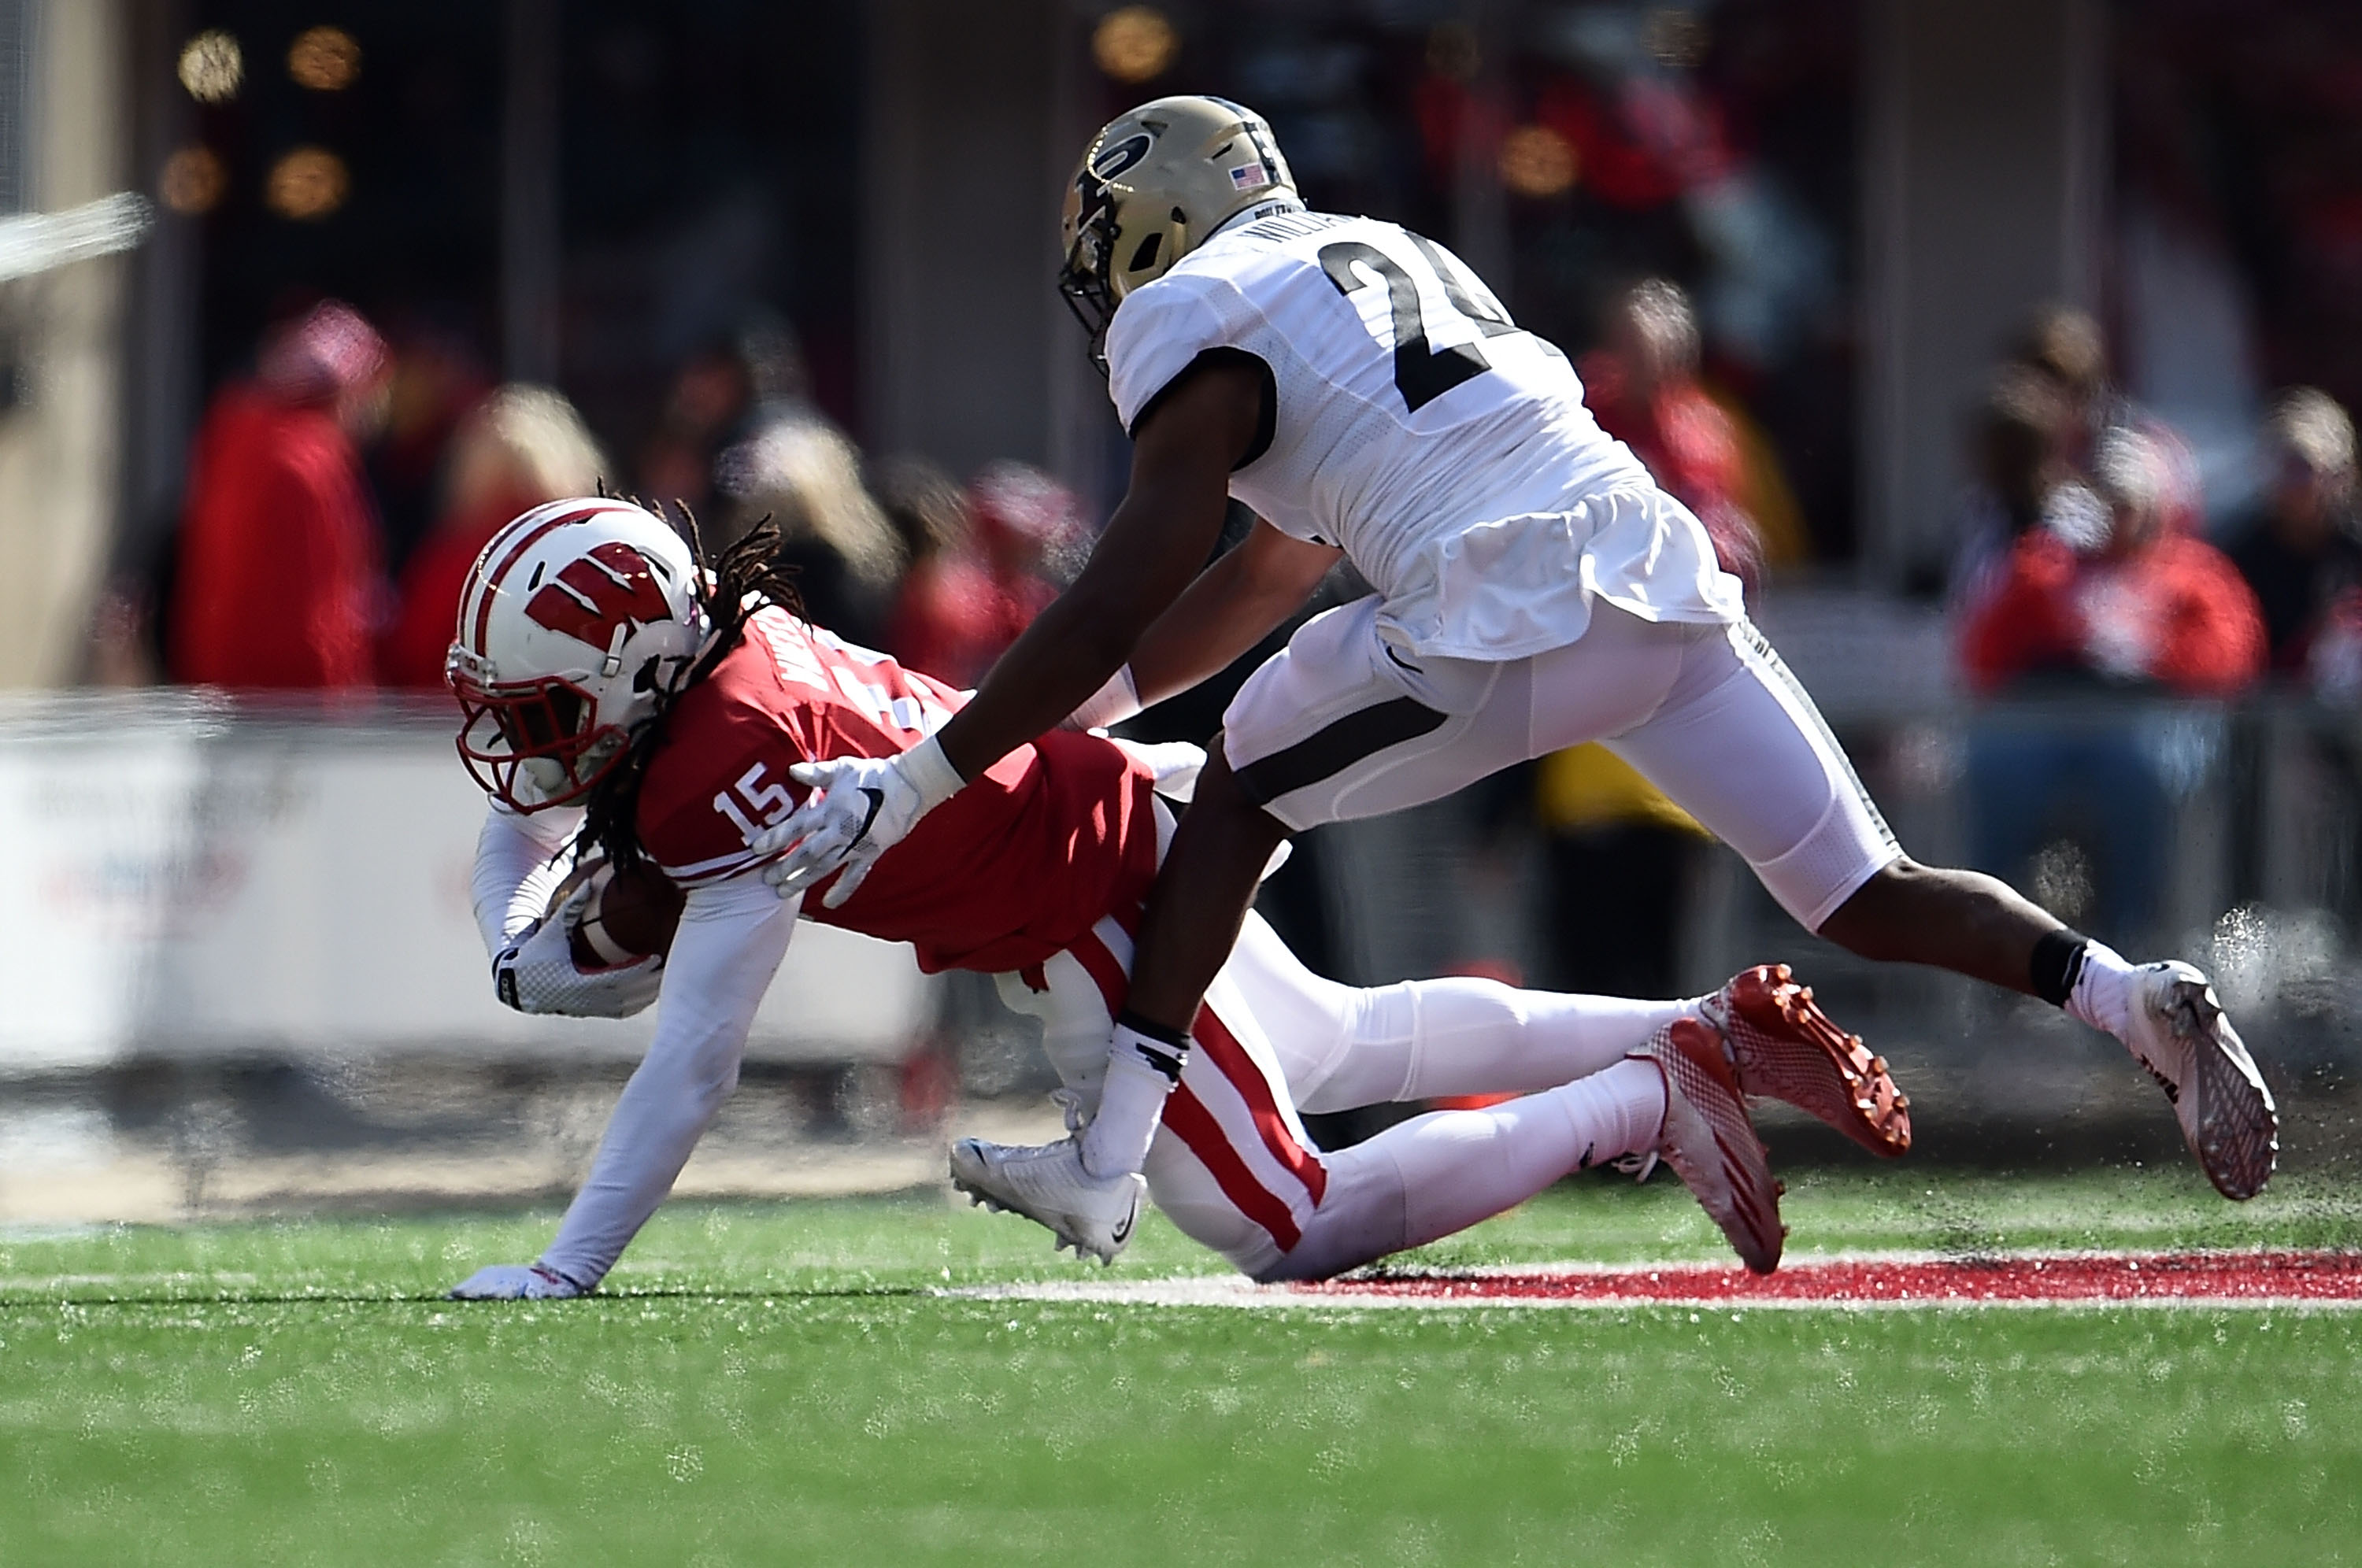 Quick hits from Wisconsin's win over Purdue